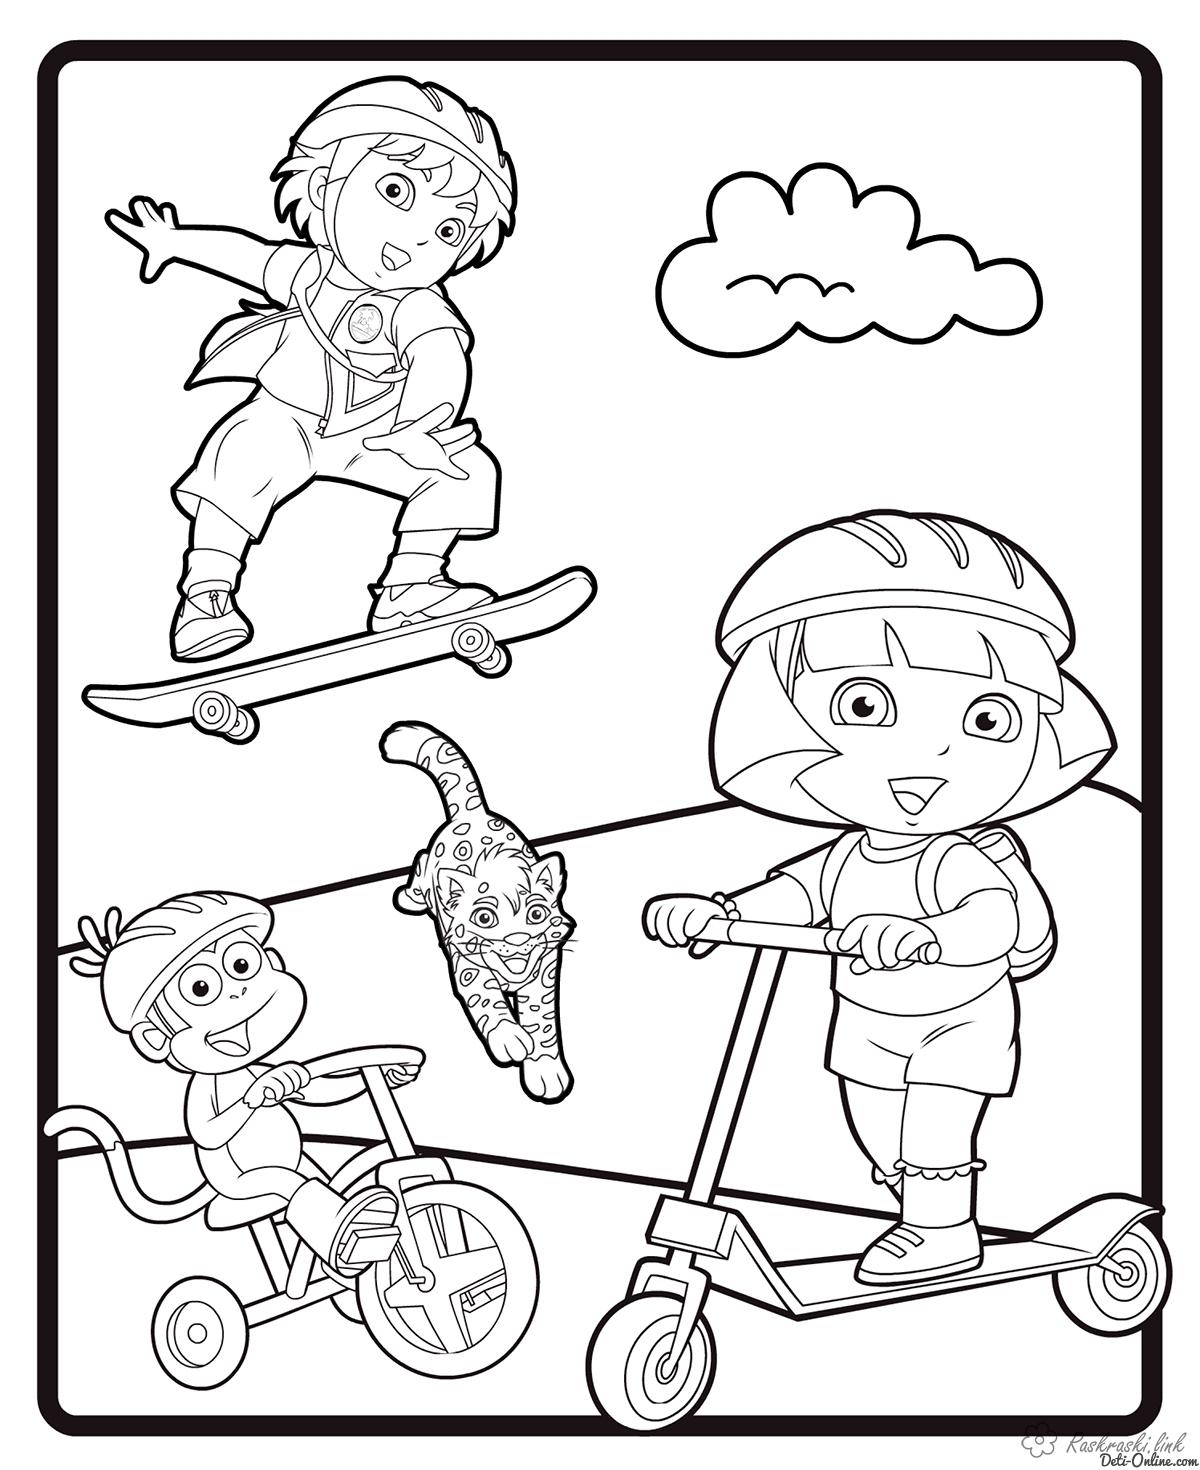 Coloring Shutting Diego Daro and her friends play sports, bike, skateboard, scooter